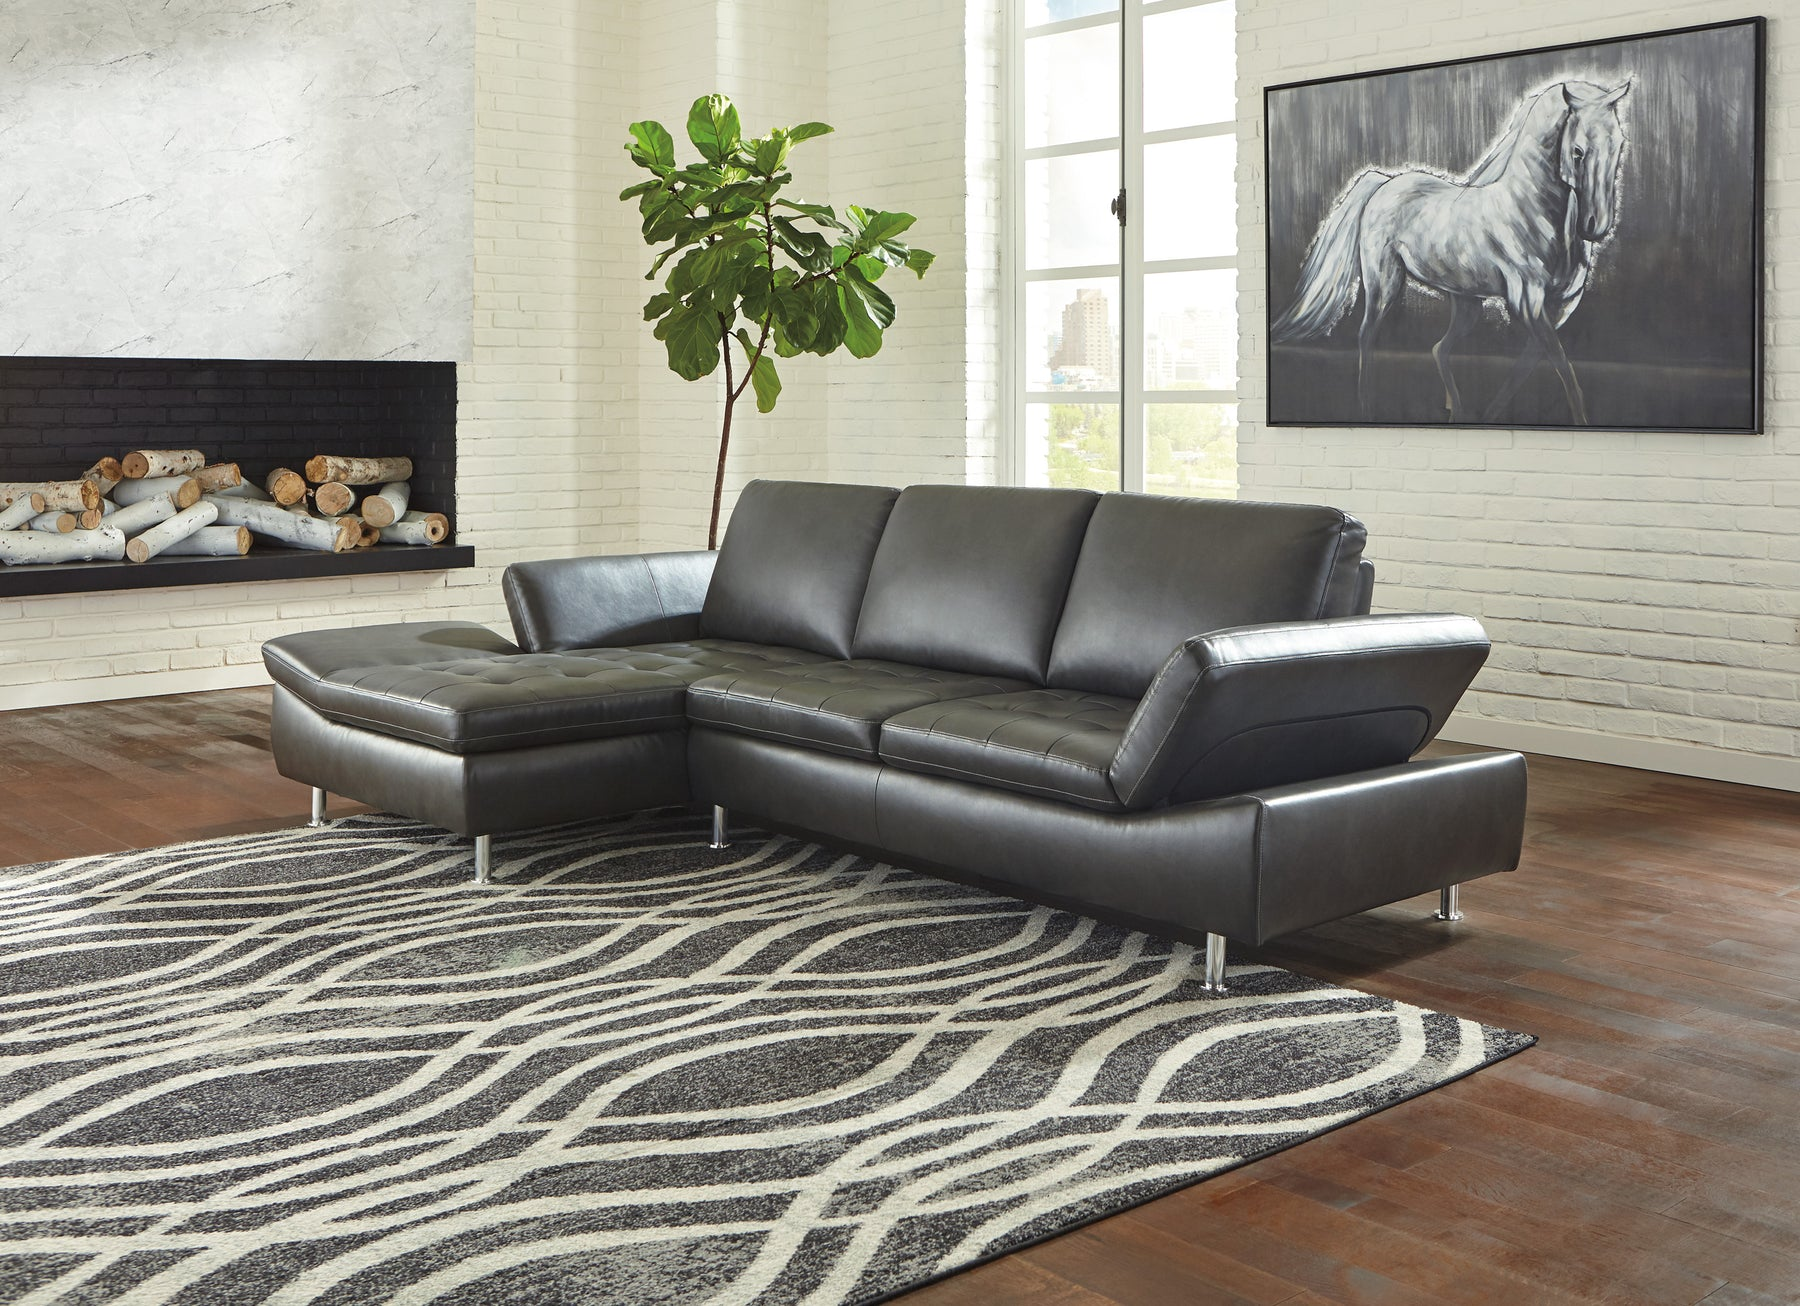 Signature Design Carrnew Fabric Solid Contemporary LAF Corner Chaise